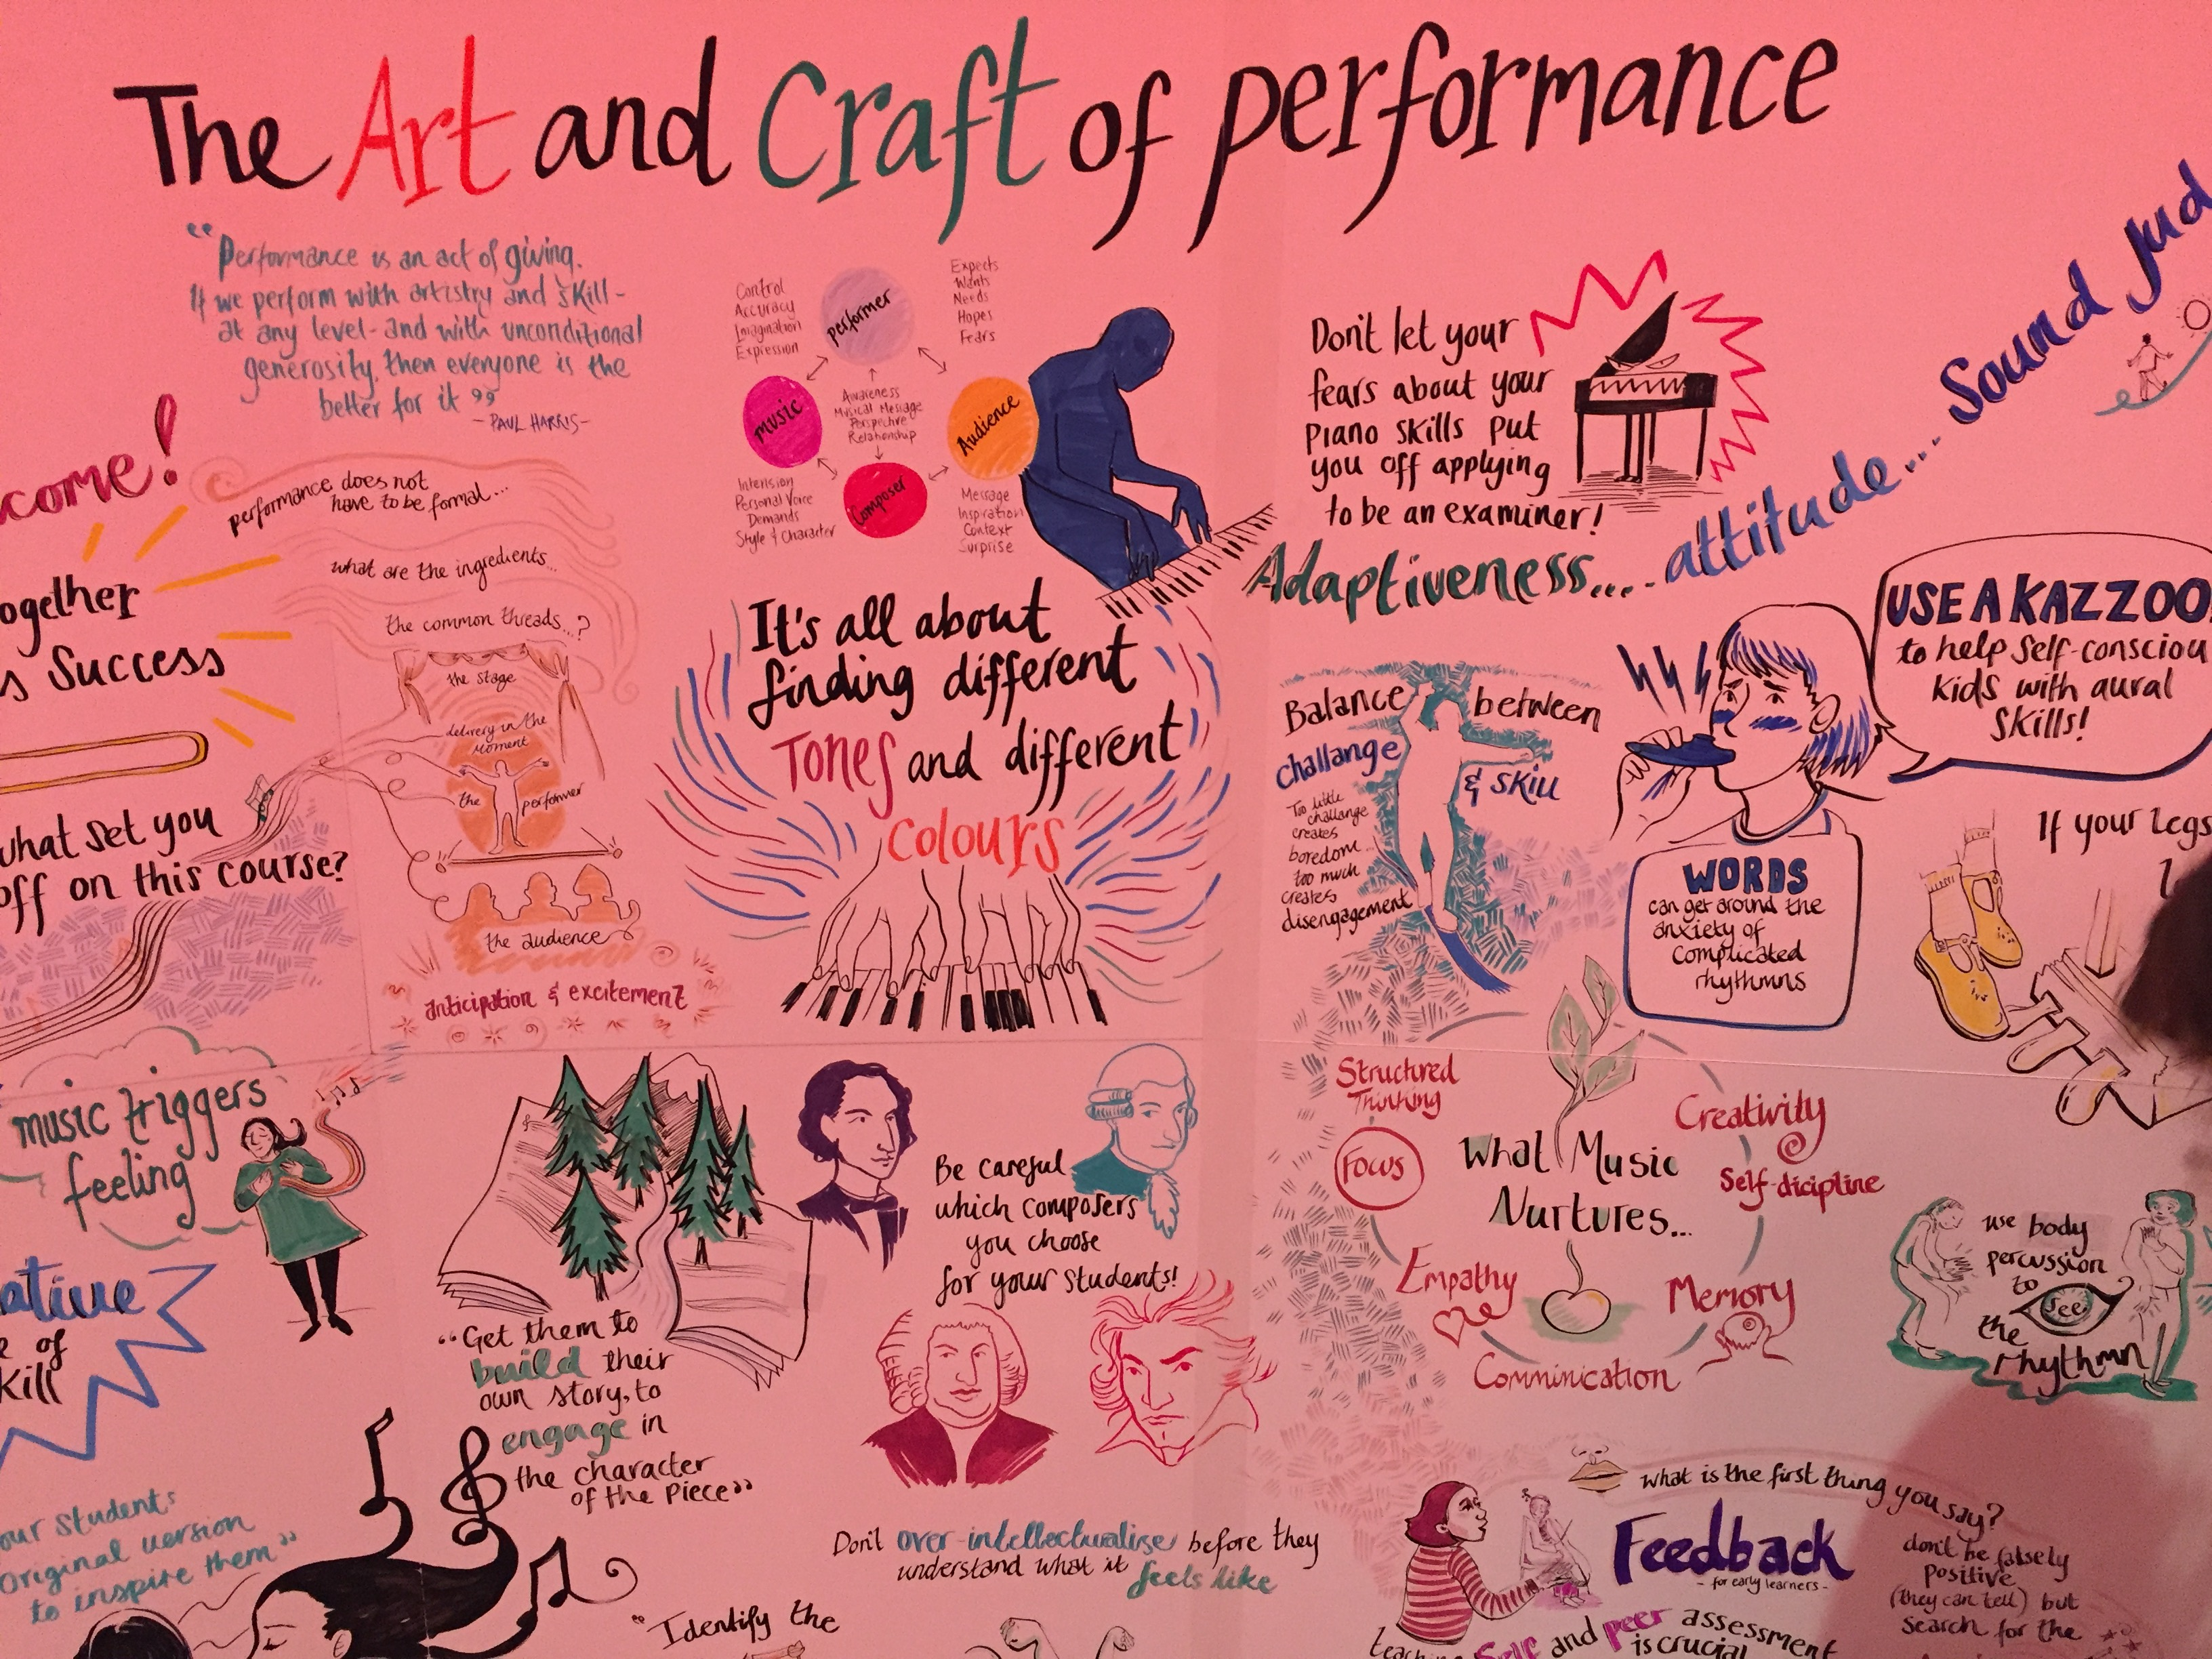 Art and Craft of Performance